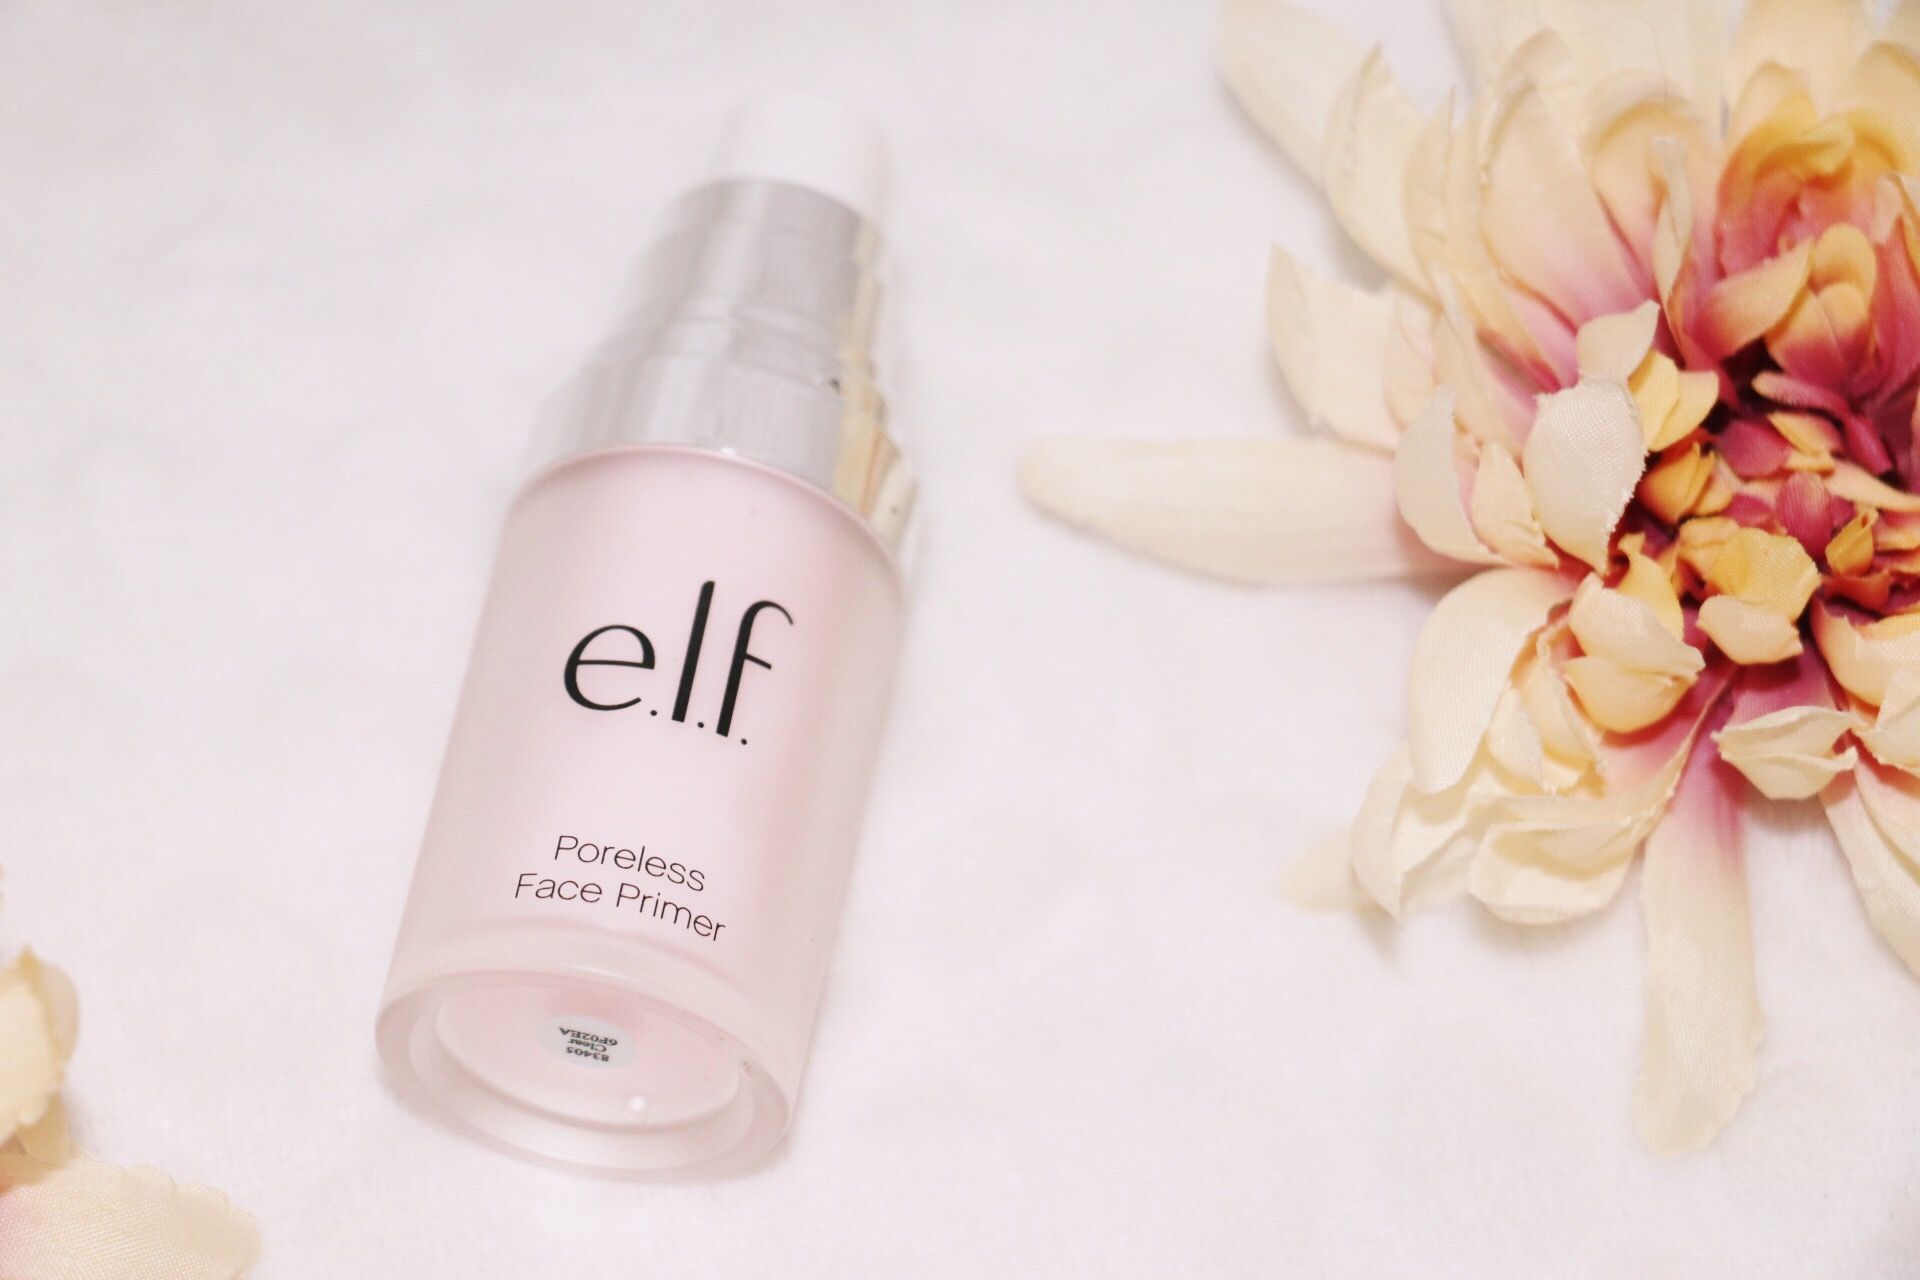 2) E.L.F. Poreless Face Primer  THIS IS AMAZING. Not kidding. When I started using this, it was right before Thanksgiving and my family was so curious as to how my face looked so smooth. Long story short, both of my sisters now use it and love it as well! This product is so smooth. I have combination skin and I usually have issues with product clinging to my dry spots, or getting too oily in my t zone. This primer works great for me and I totally recommend it! Best part? It's only $6! I got mine at Target, but you can also order it  here.